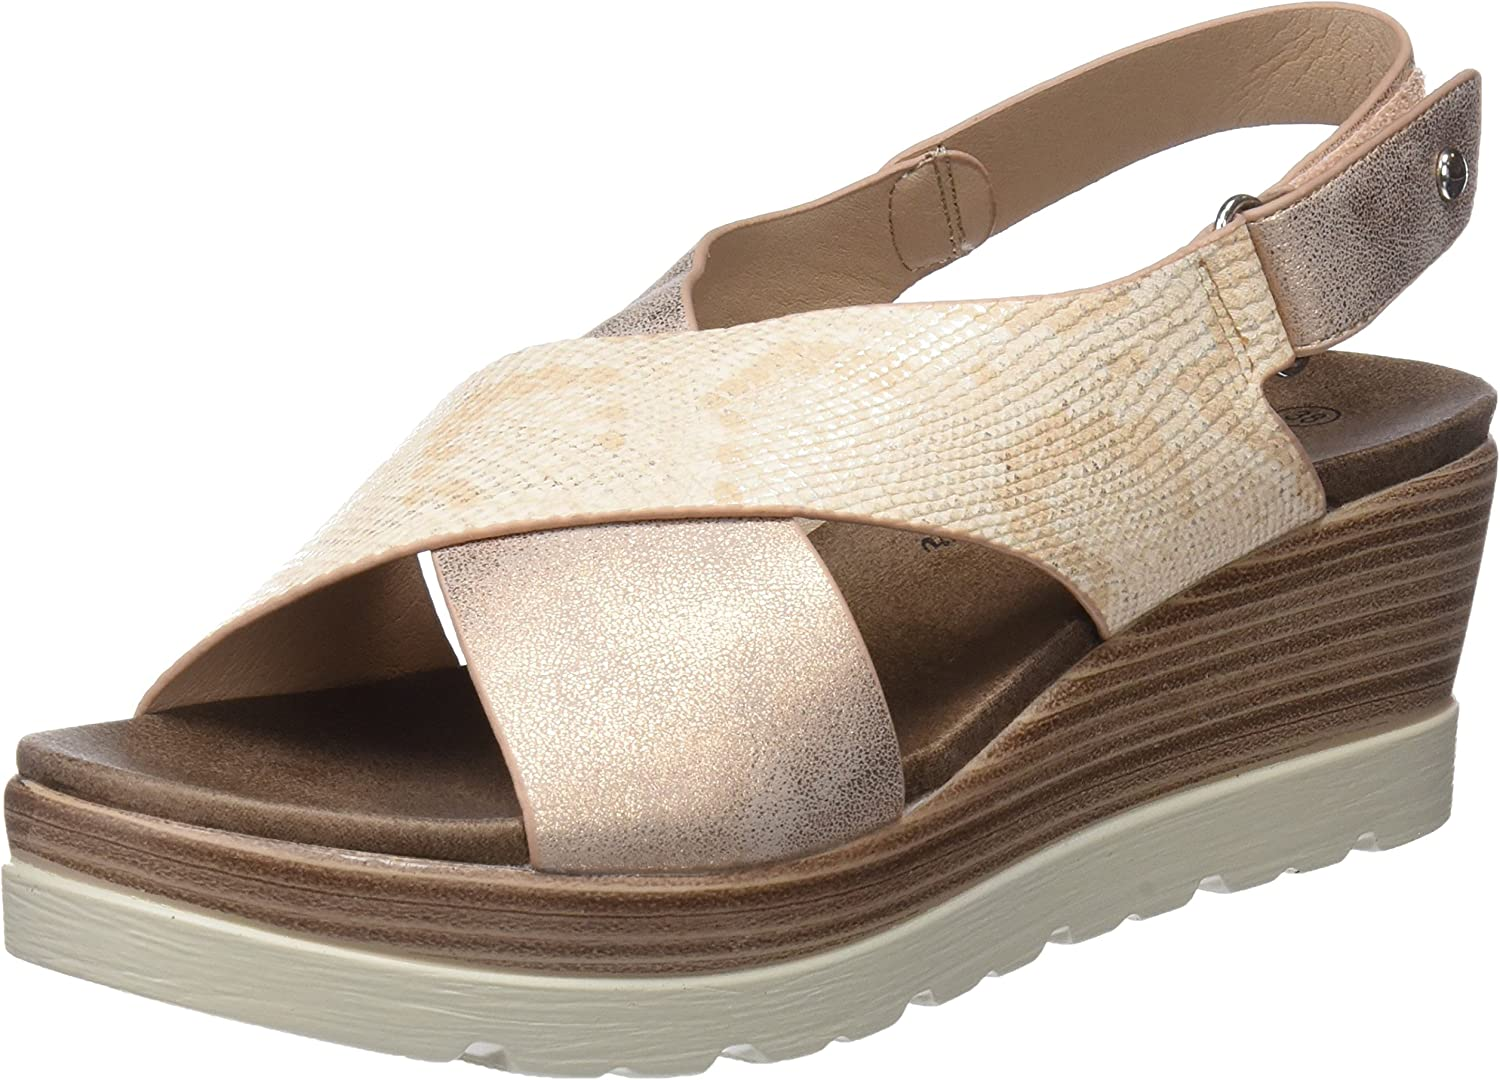 XTI shoes Woman Sandals 47938 Nude